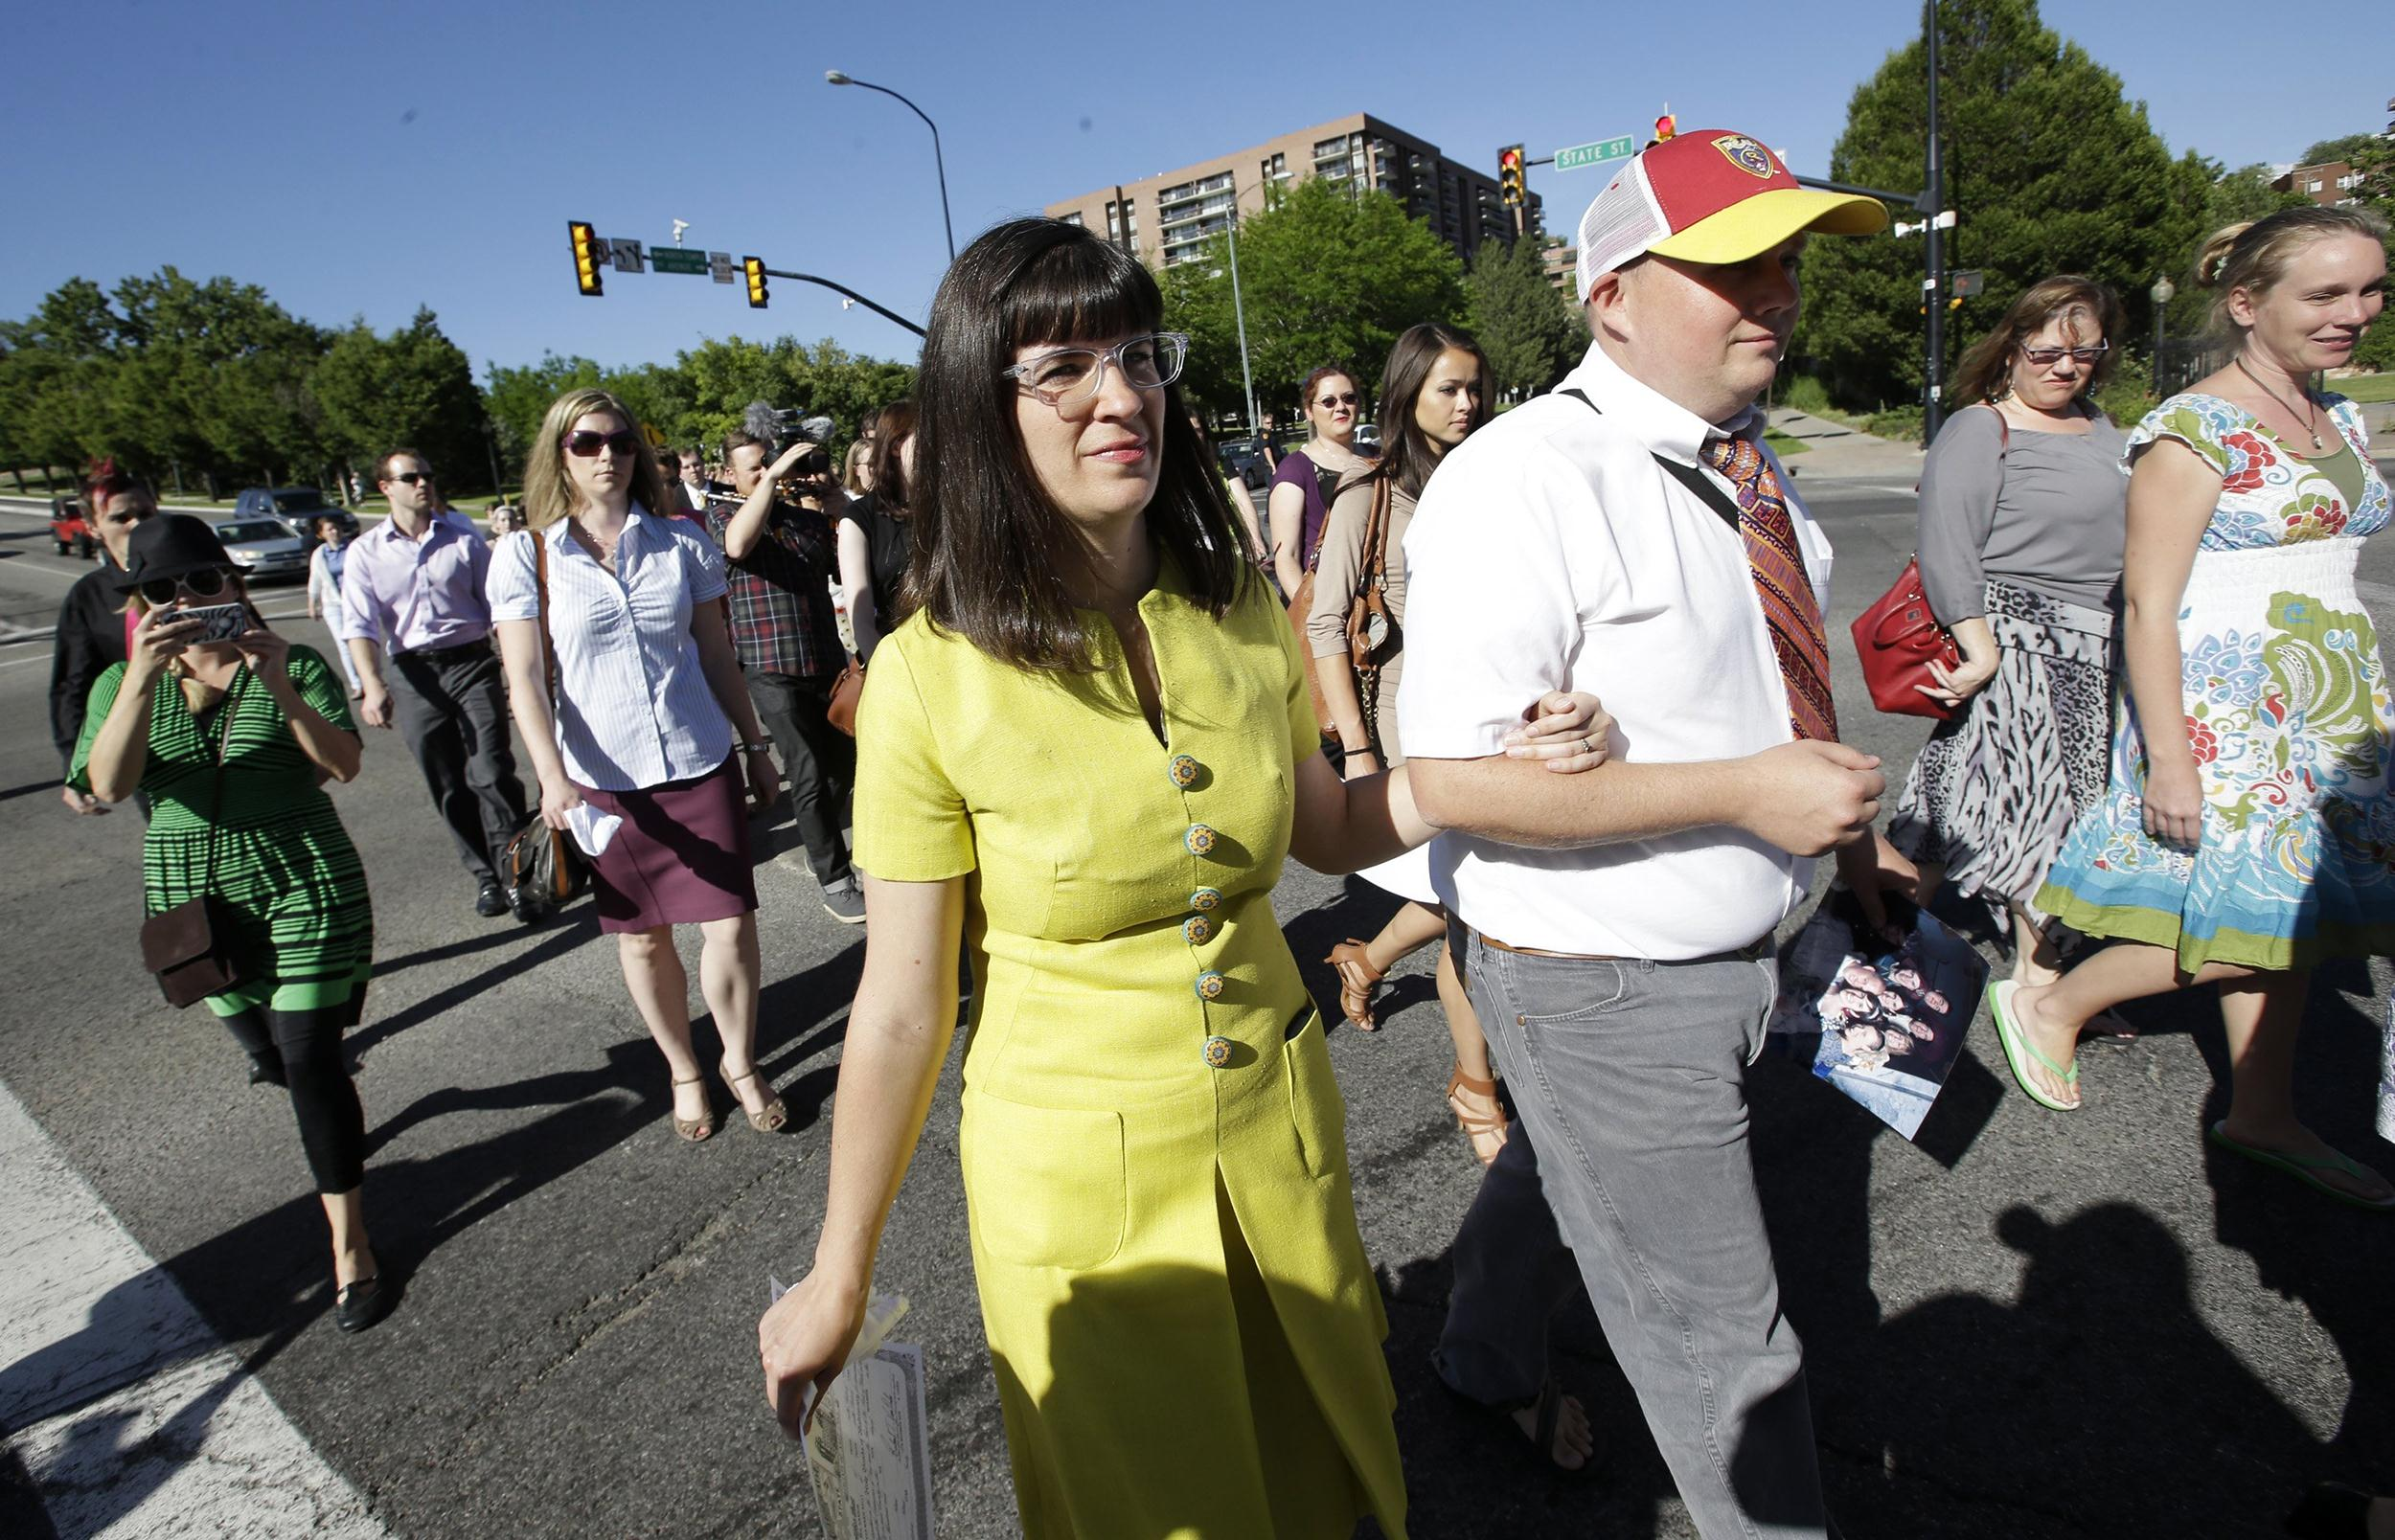 Image: Kate Kelly, left, walks with supporters to the Church Office Building of the Church of Jesus Christ of Latter-day Saints